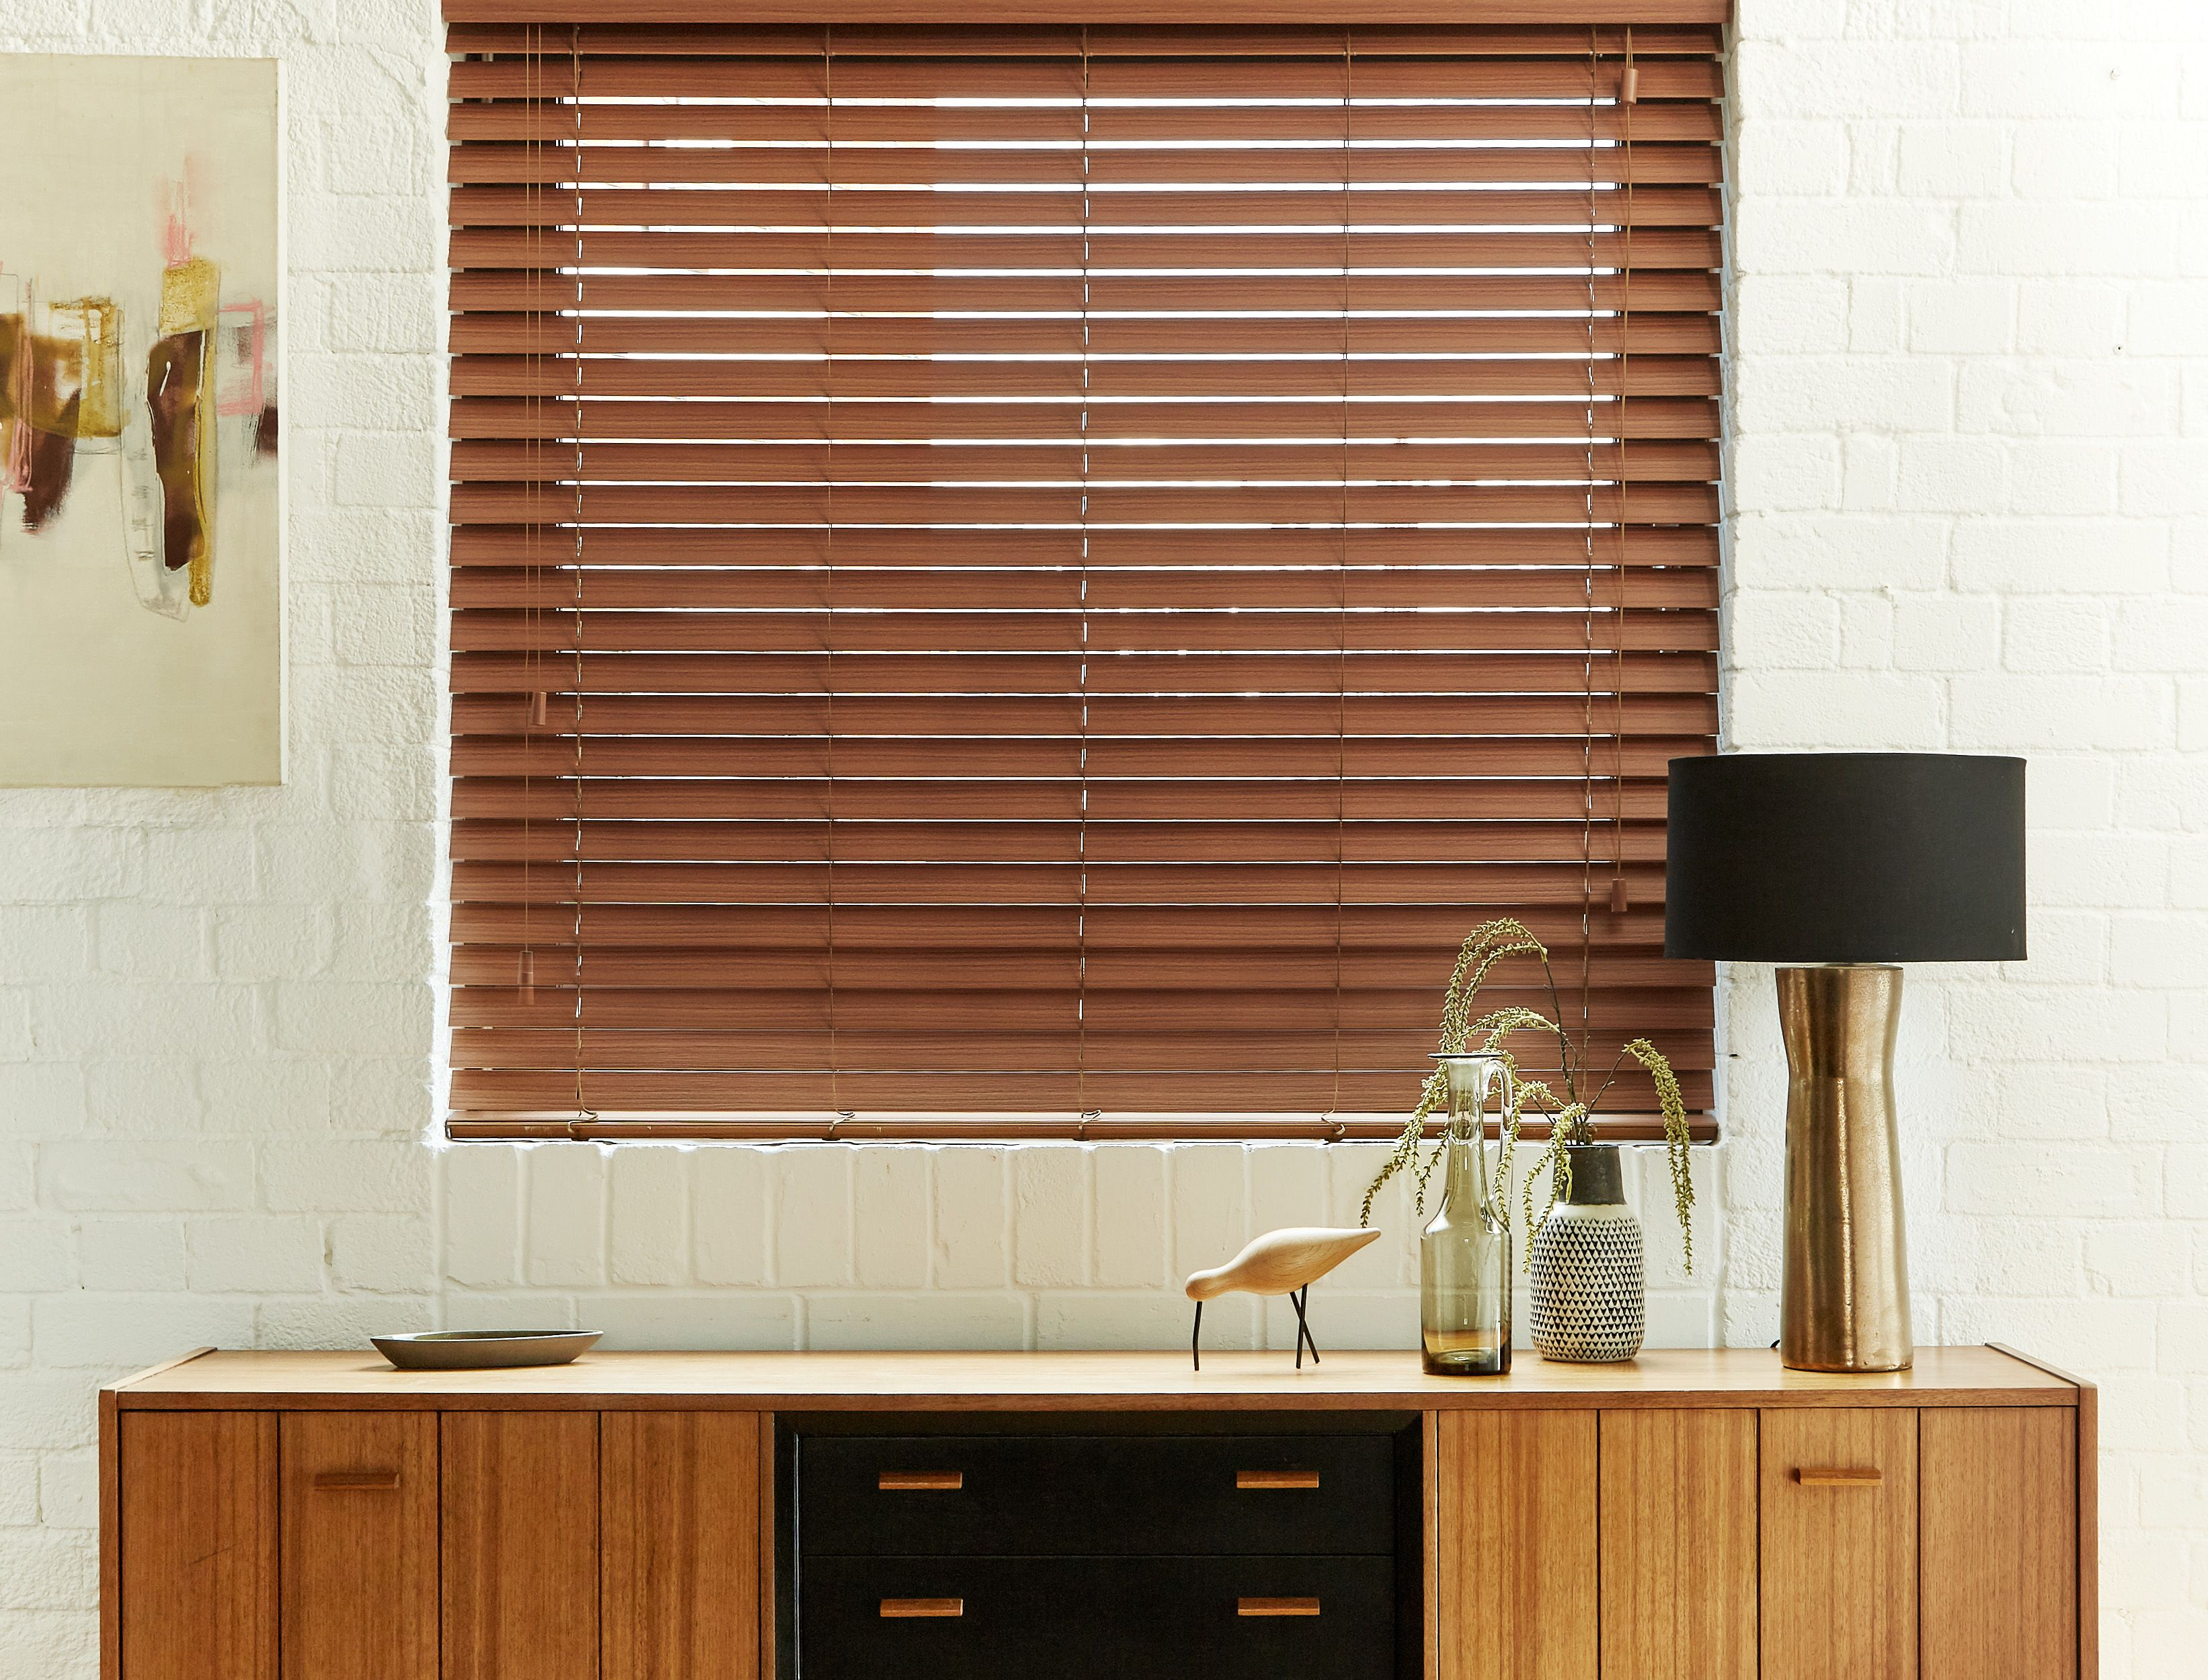 lafayette in cleaning for trim white blinds vertical with decor durable interesting wooden control window wood venetian an cream curtains glass blind board remote ideas repair